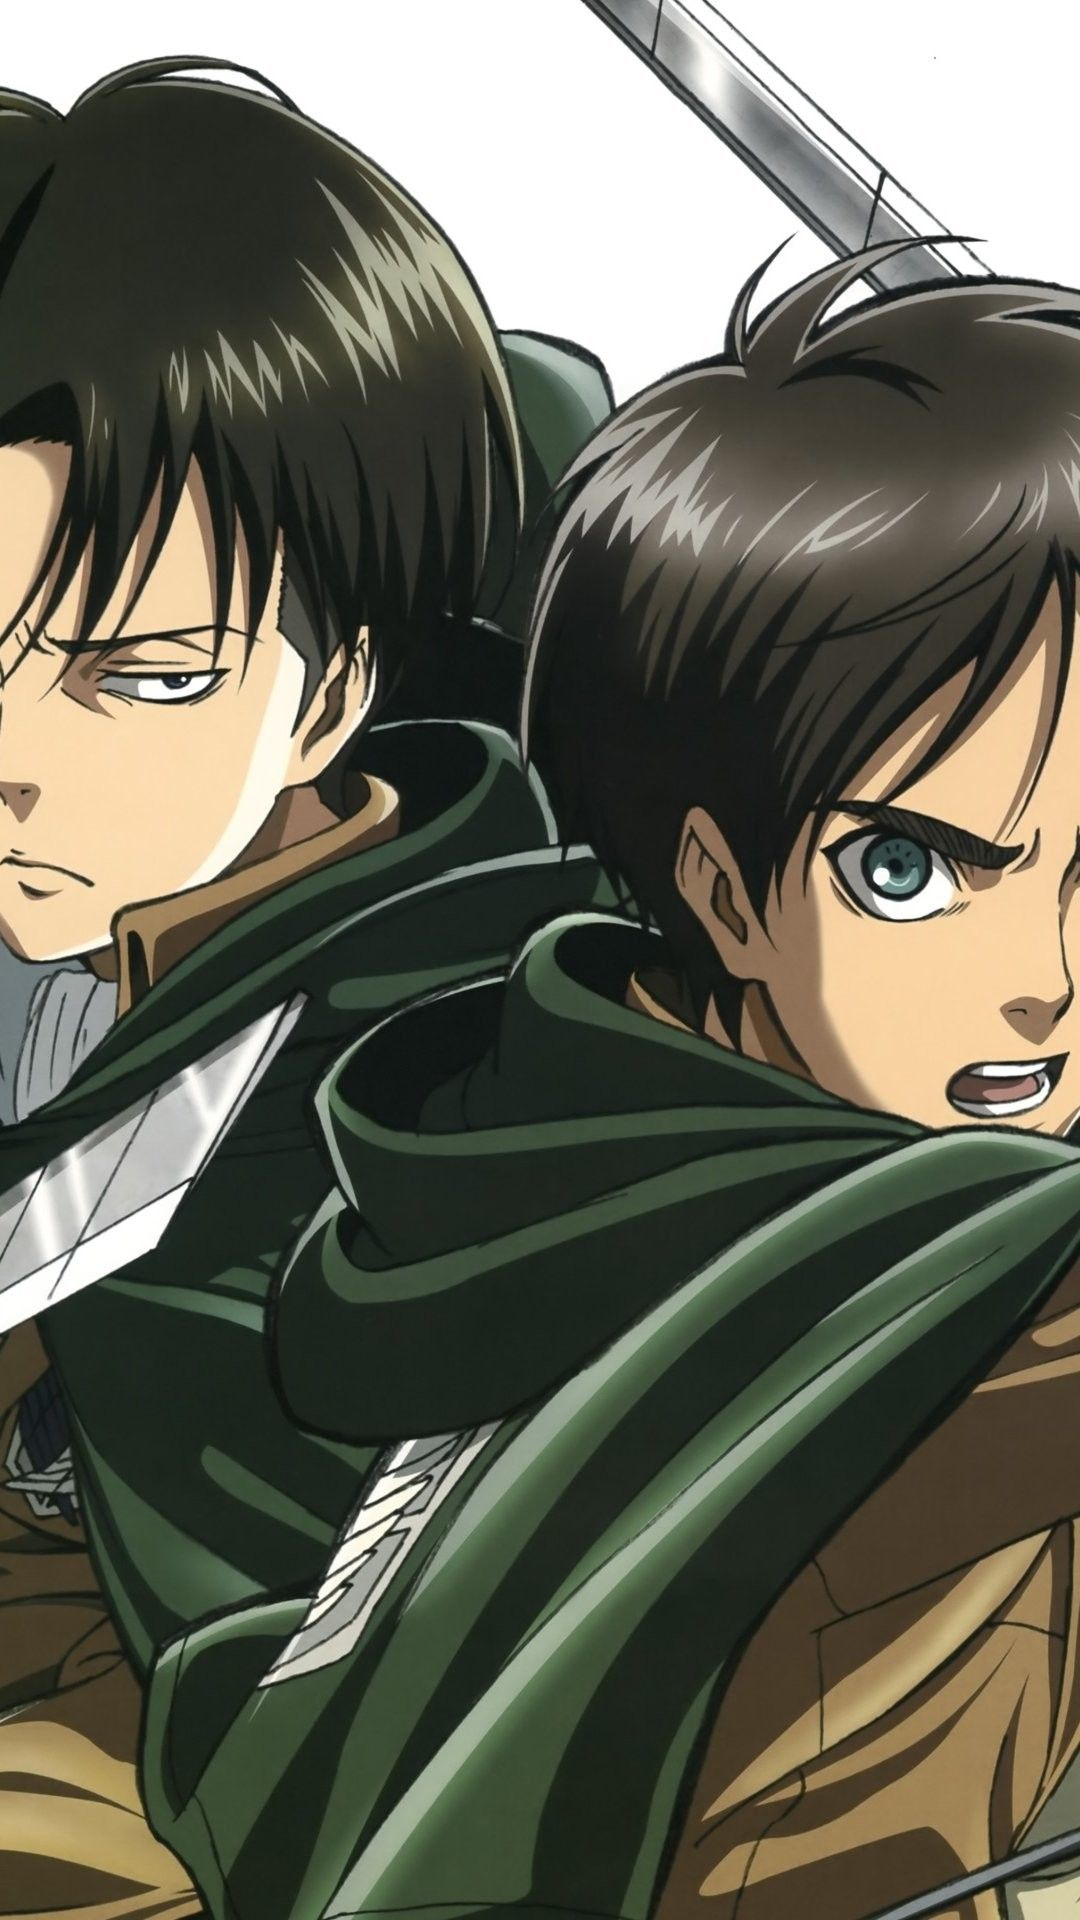 65 Eren And Levi Android Iphone Desktop Hd Backgrounds Wallpapers 1080p 4k 1080x1920 2020